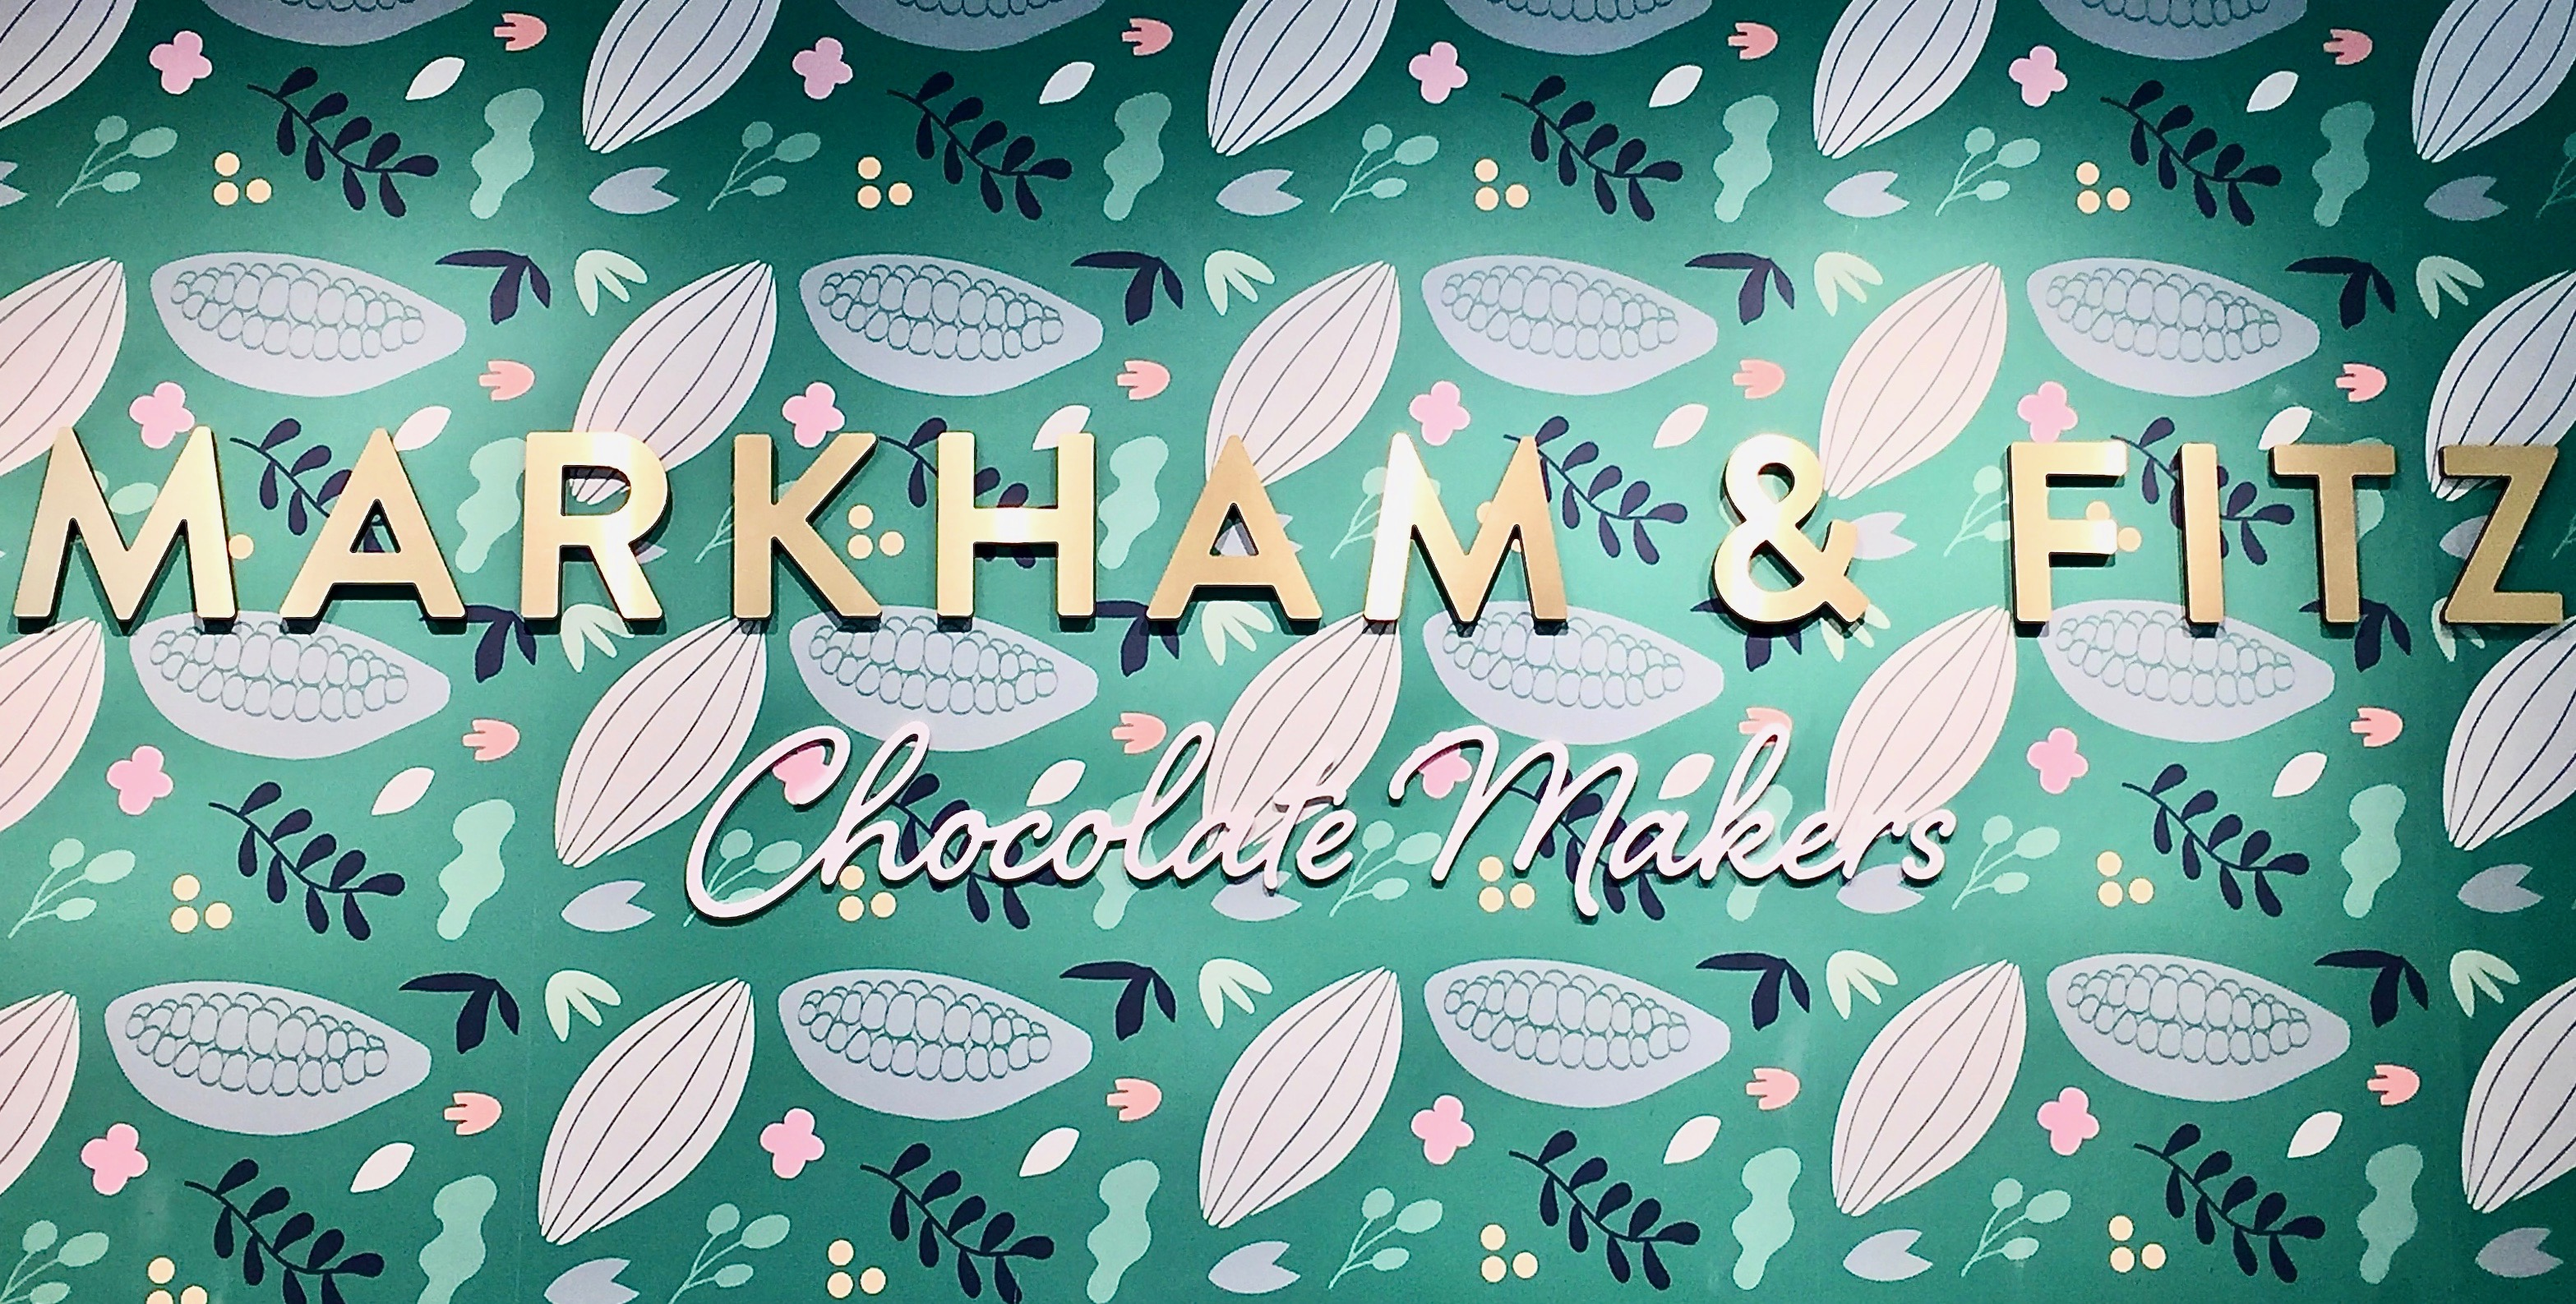 8th Street Market: Markham & Fitz, Chocolate Makers